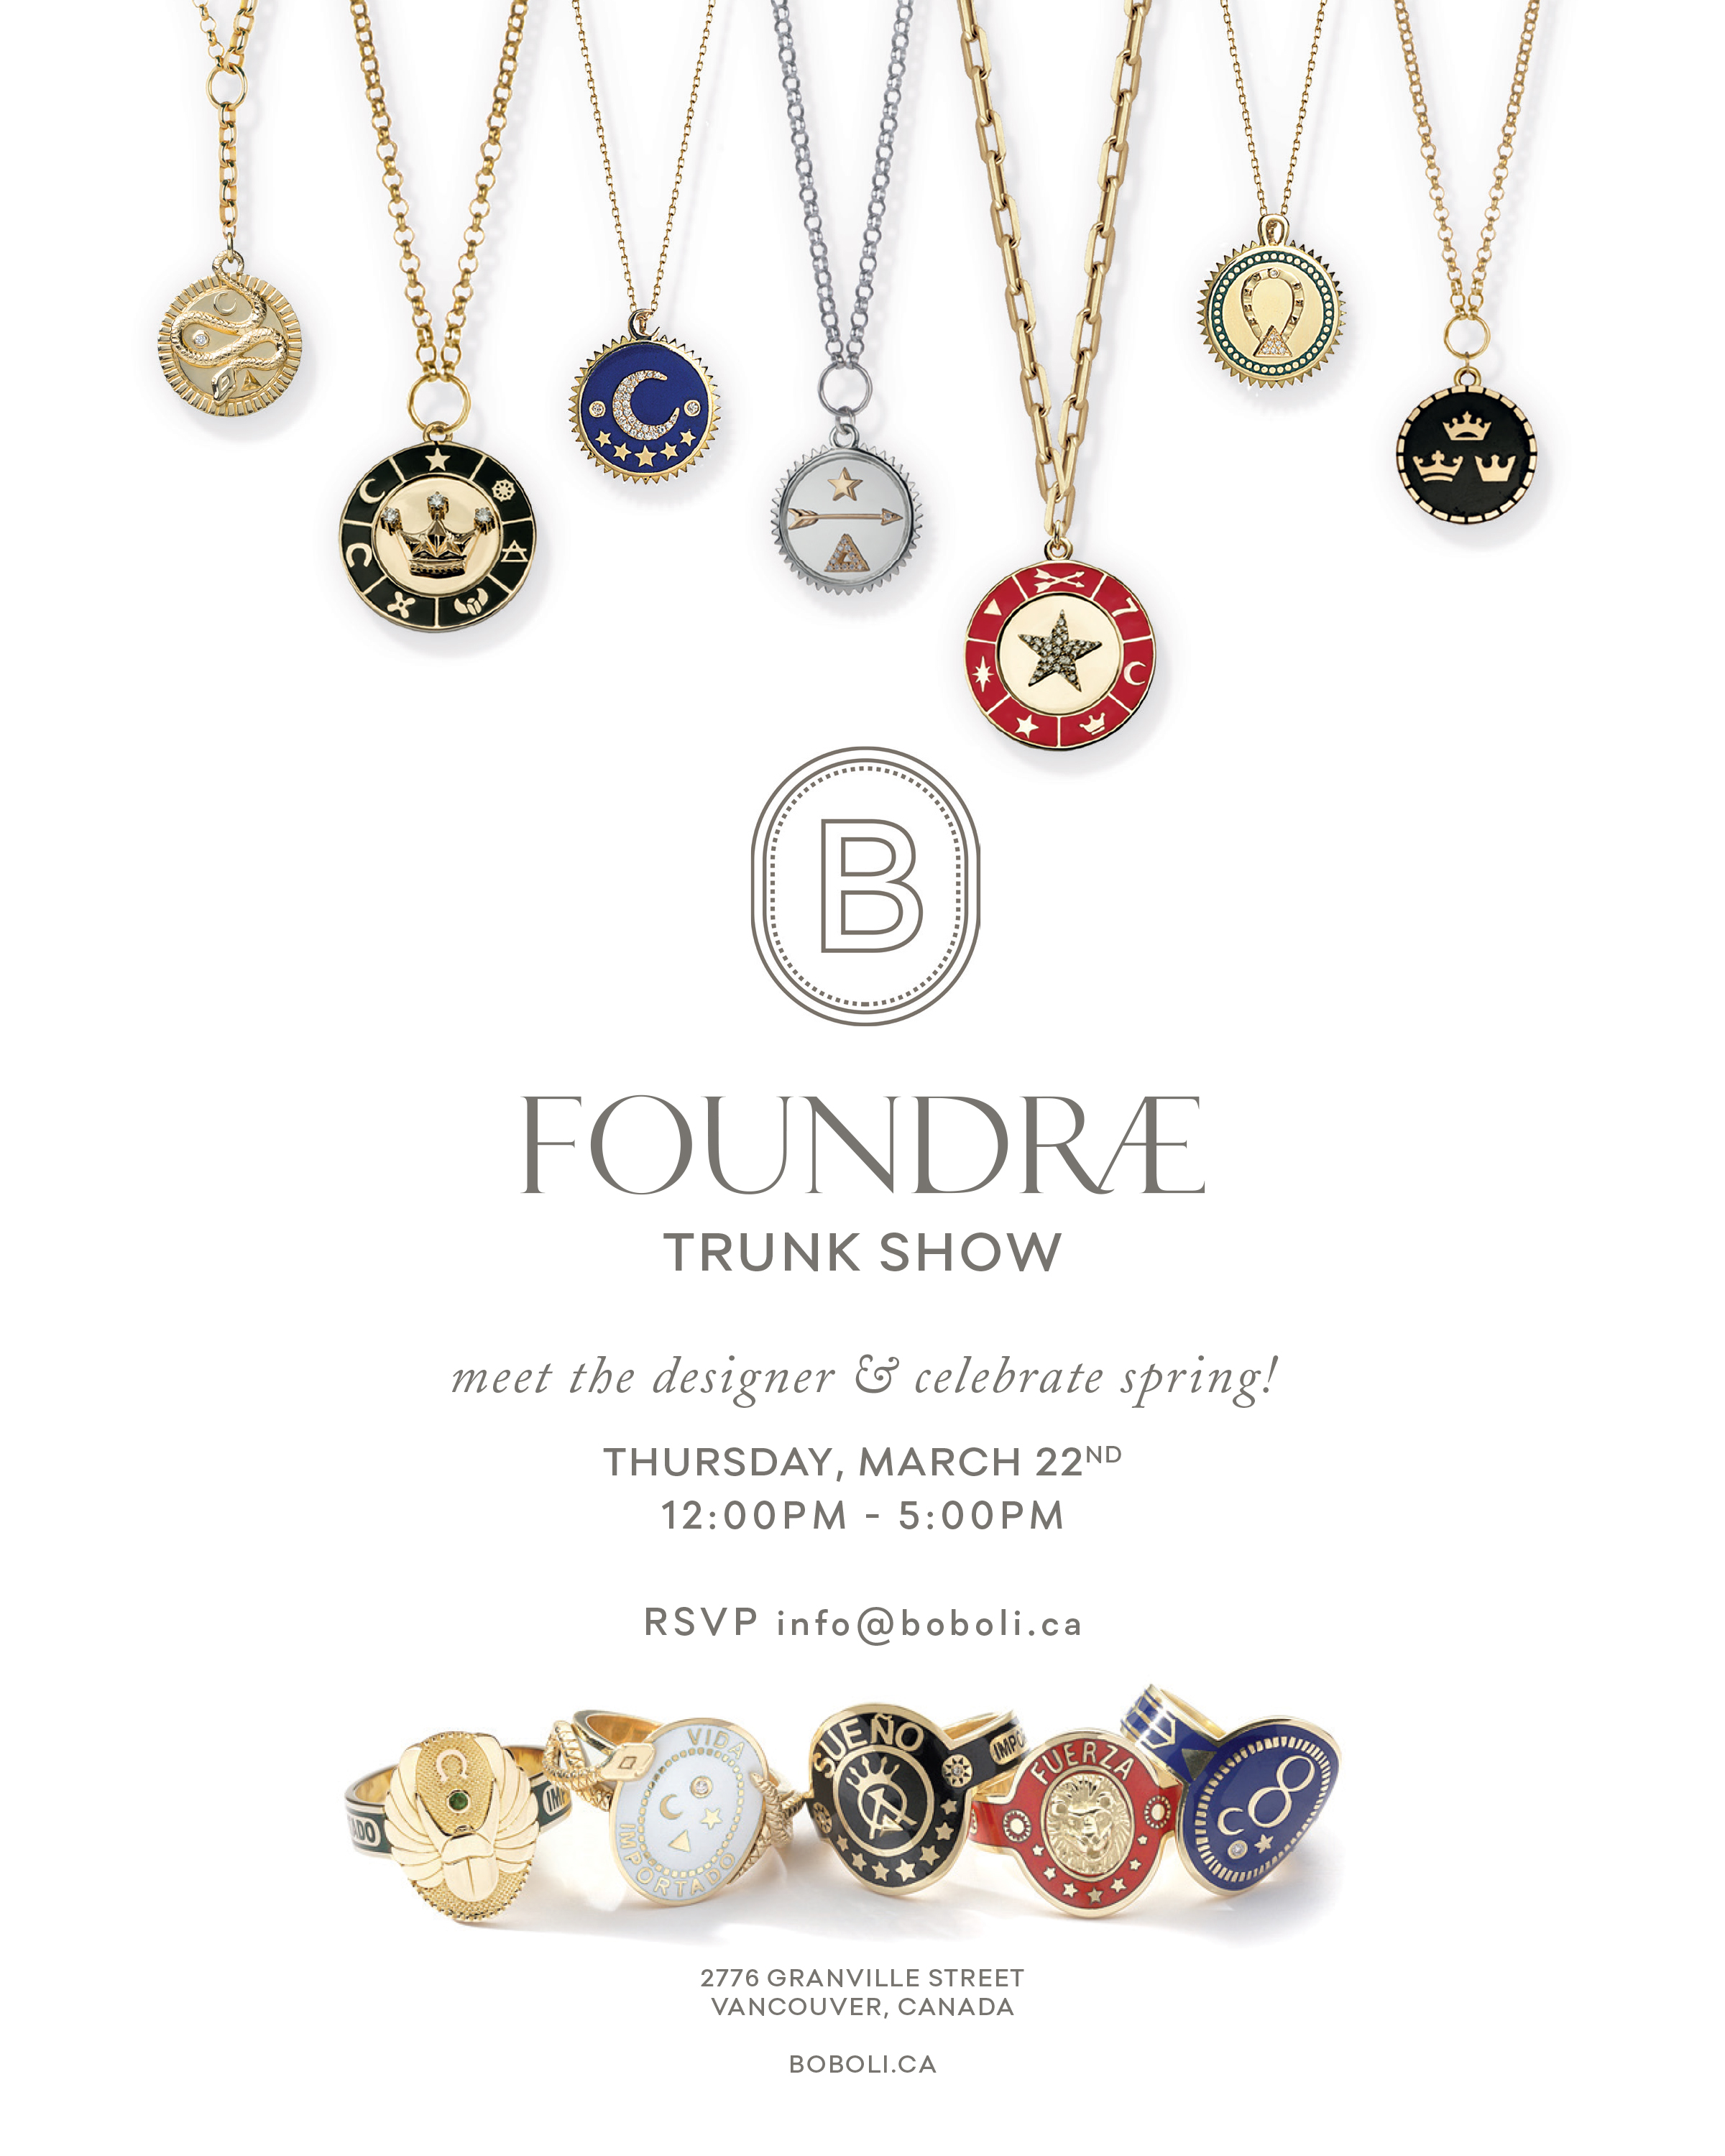 Foundrae-trunk show-IG-2.jpg